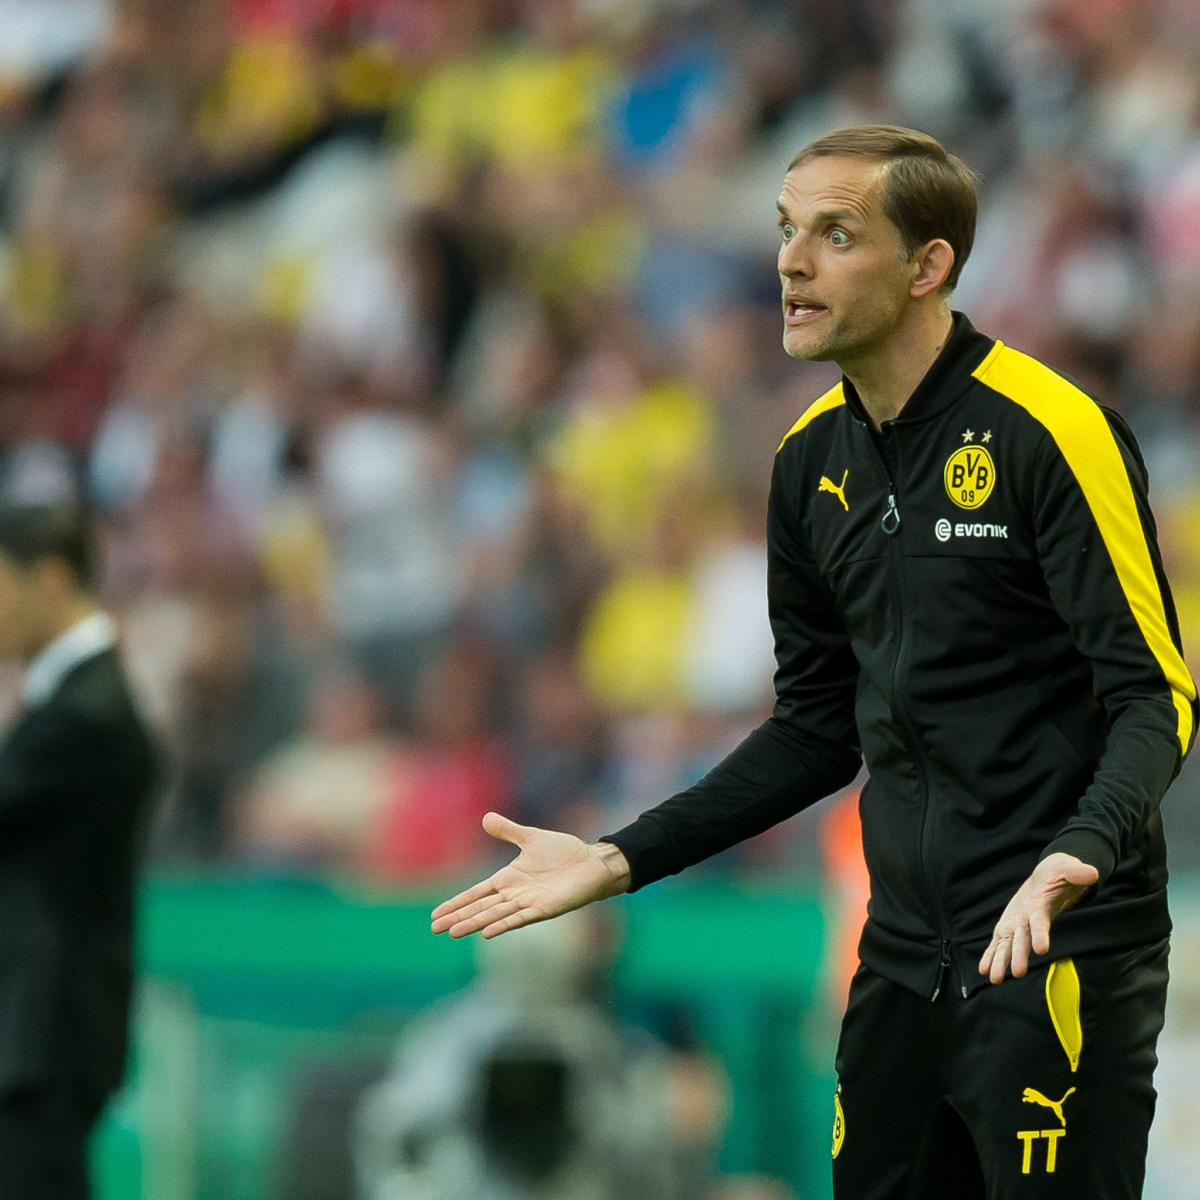 Thomas Tuchel Reportedly Wanted as Antonio Conte's Replacement at Chelsea